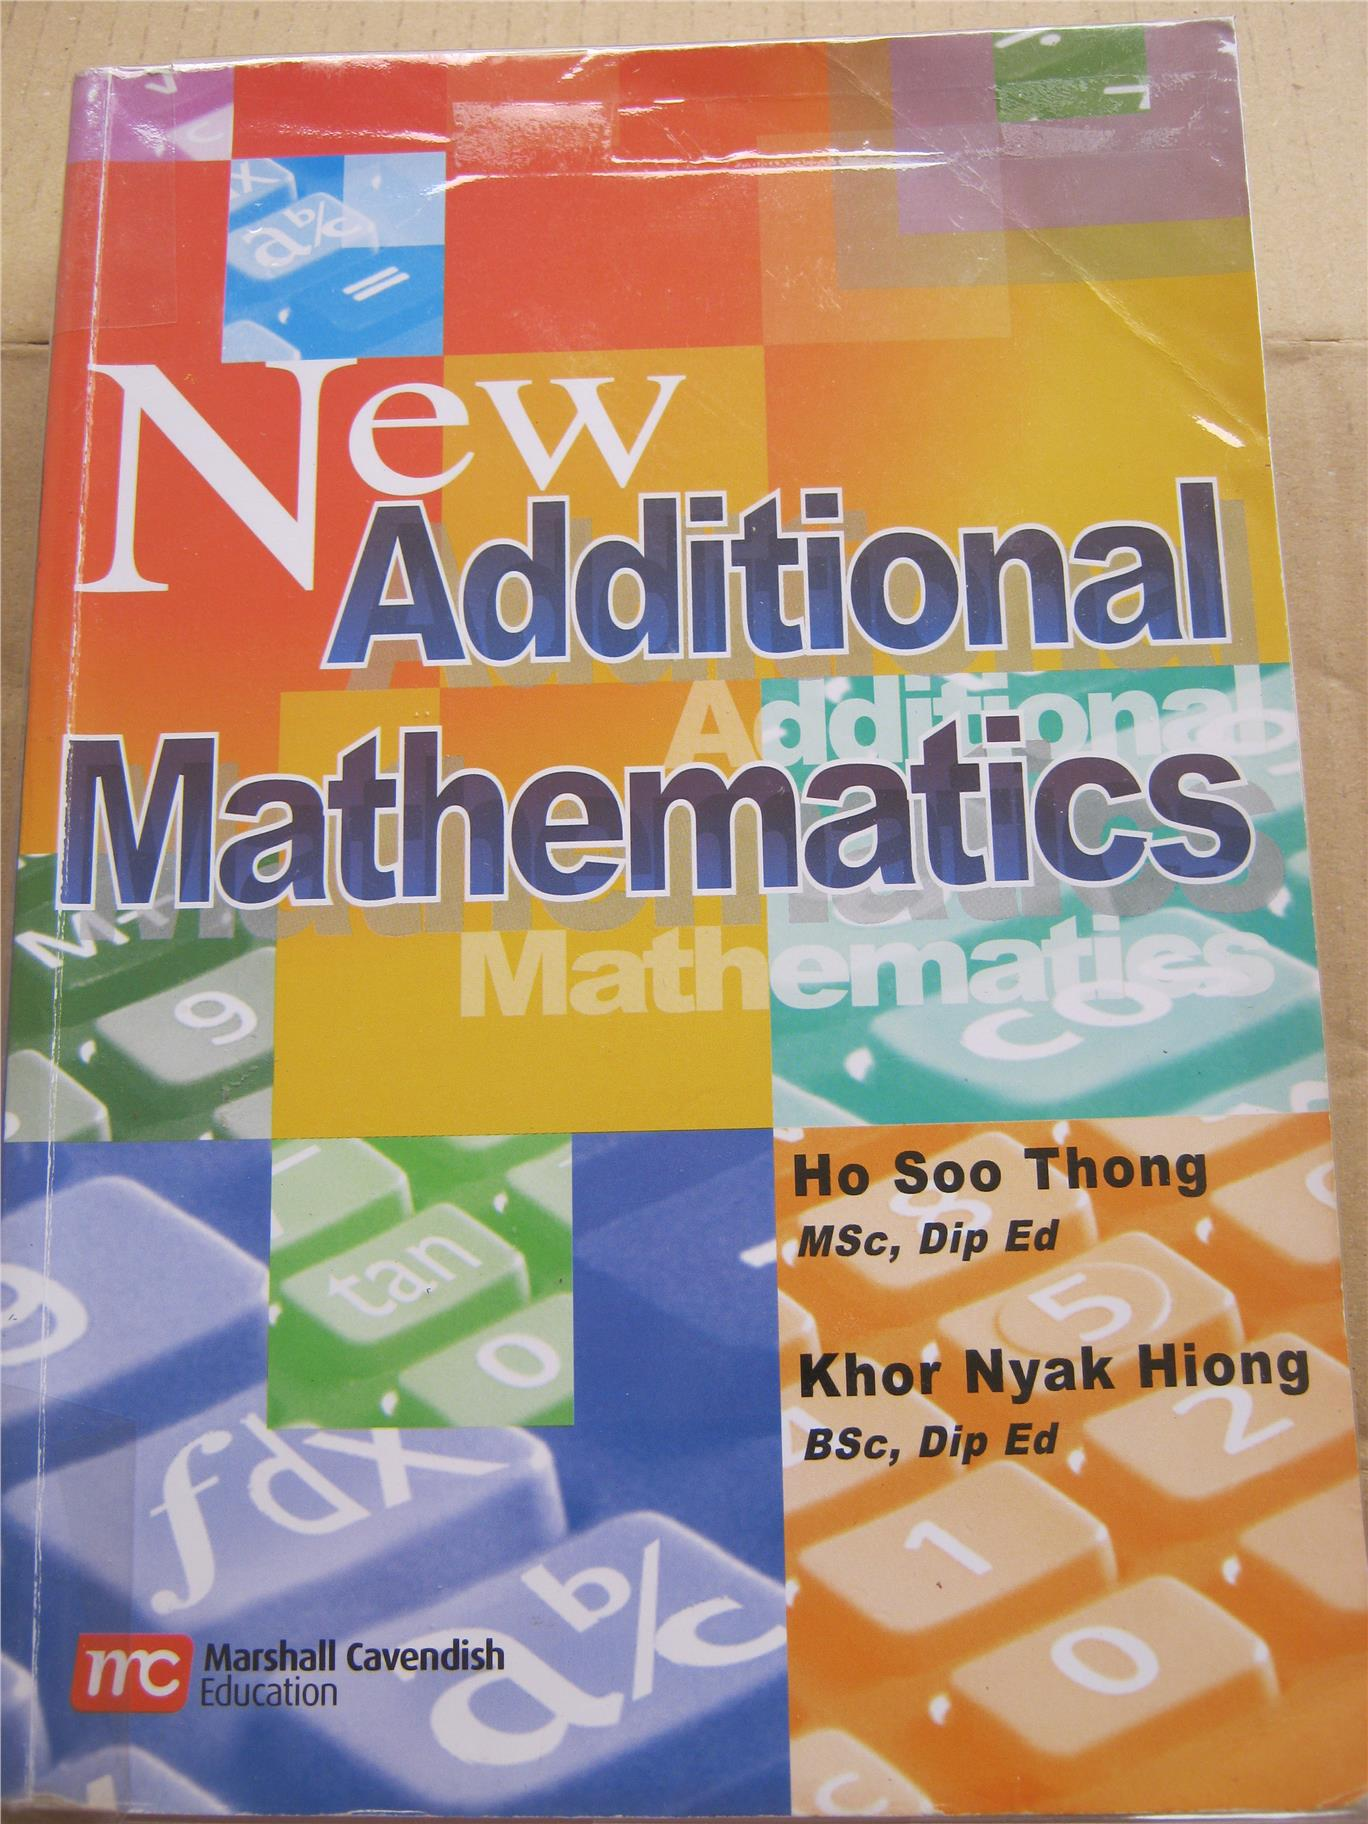 2nd hand: New Additional Mathematics ISBN: 9789814210188